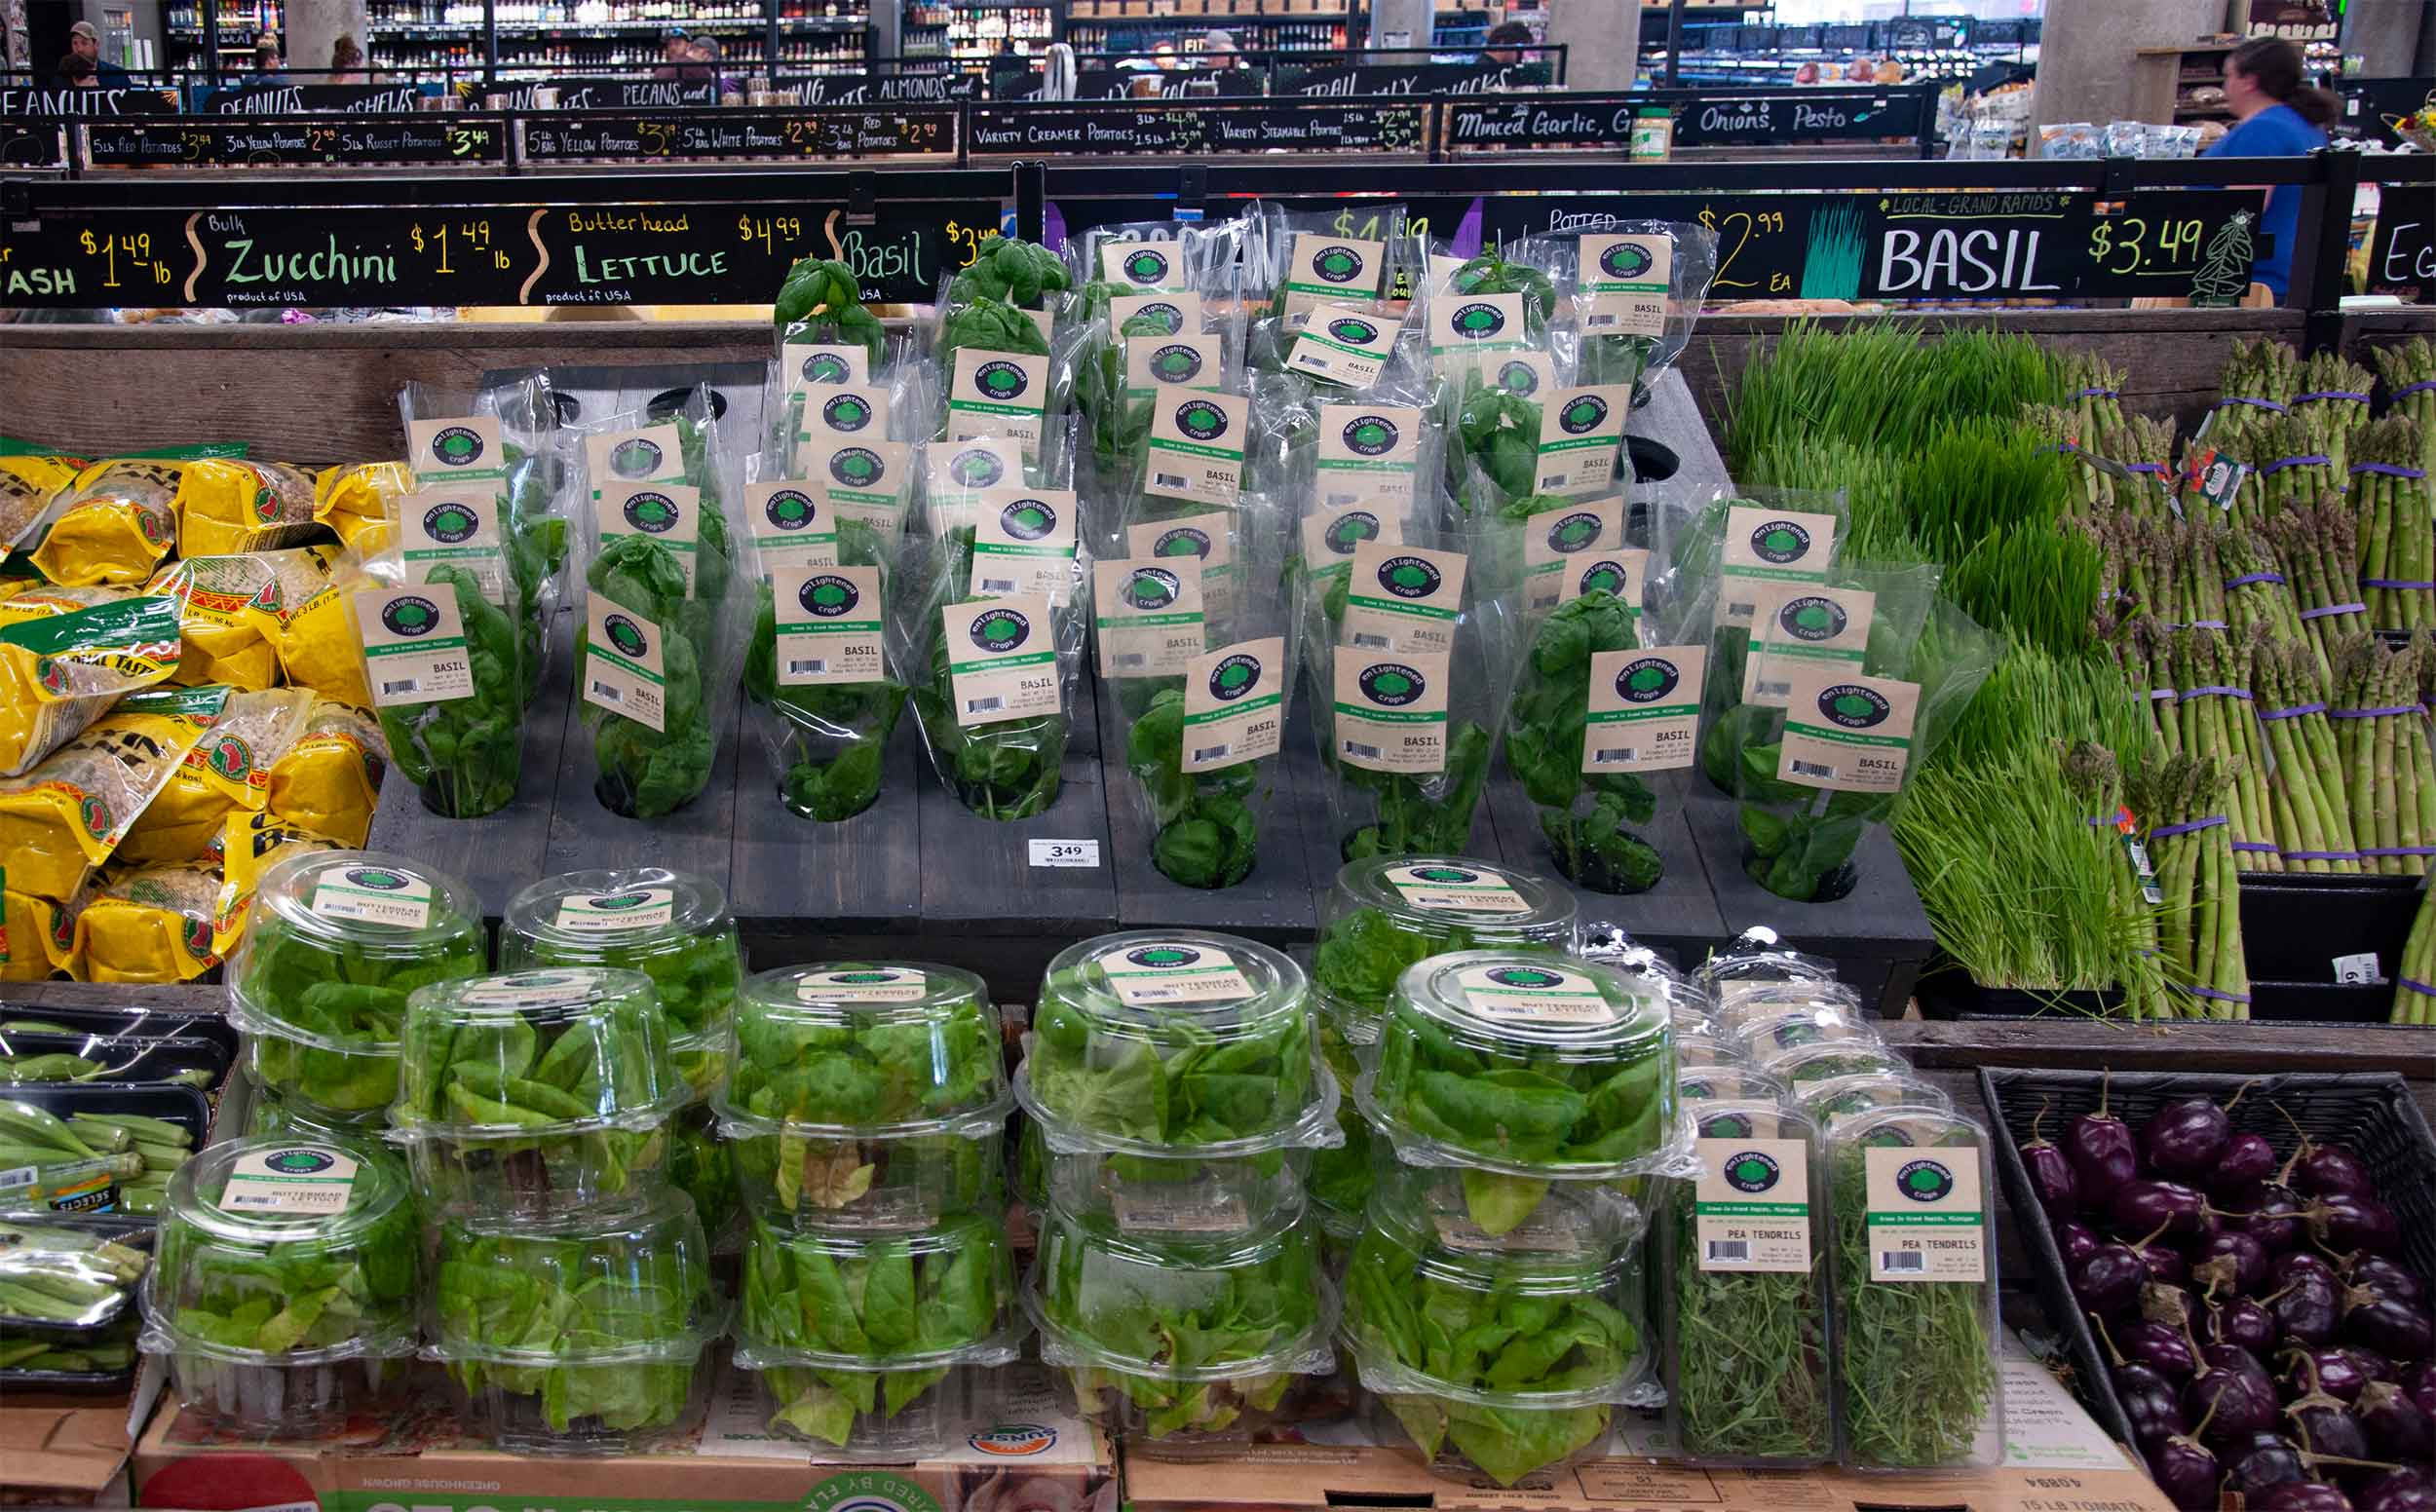 Enlightened-Crops-Grocery-Store-1.jpg